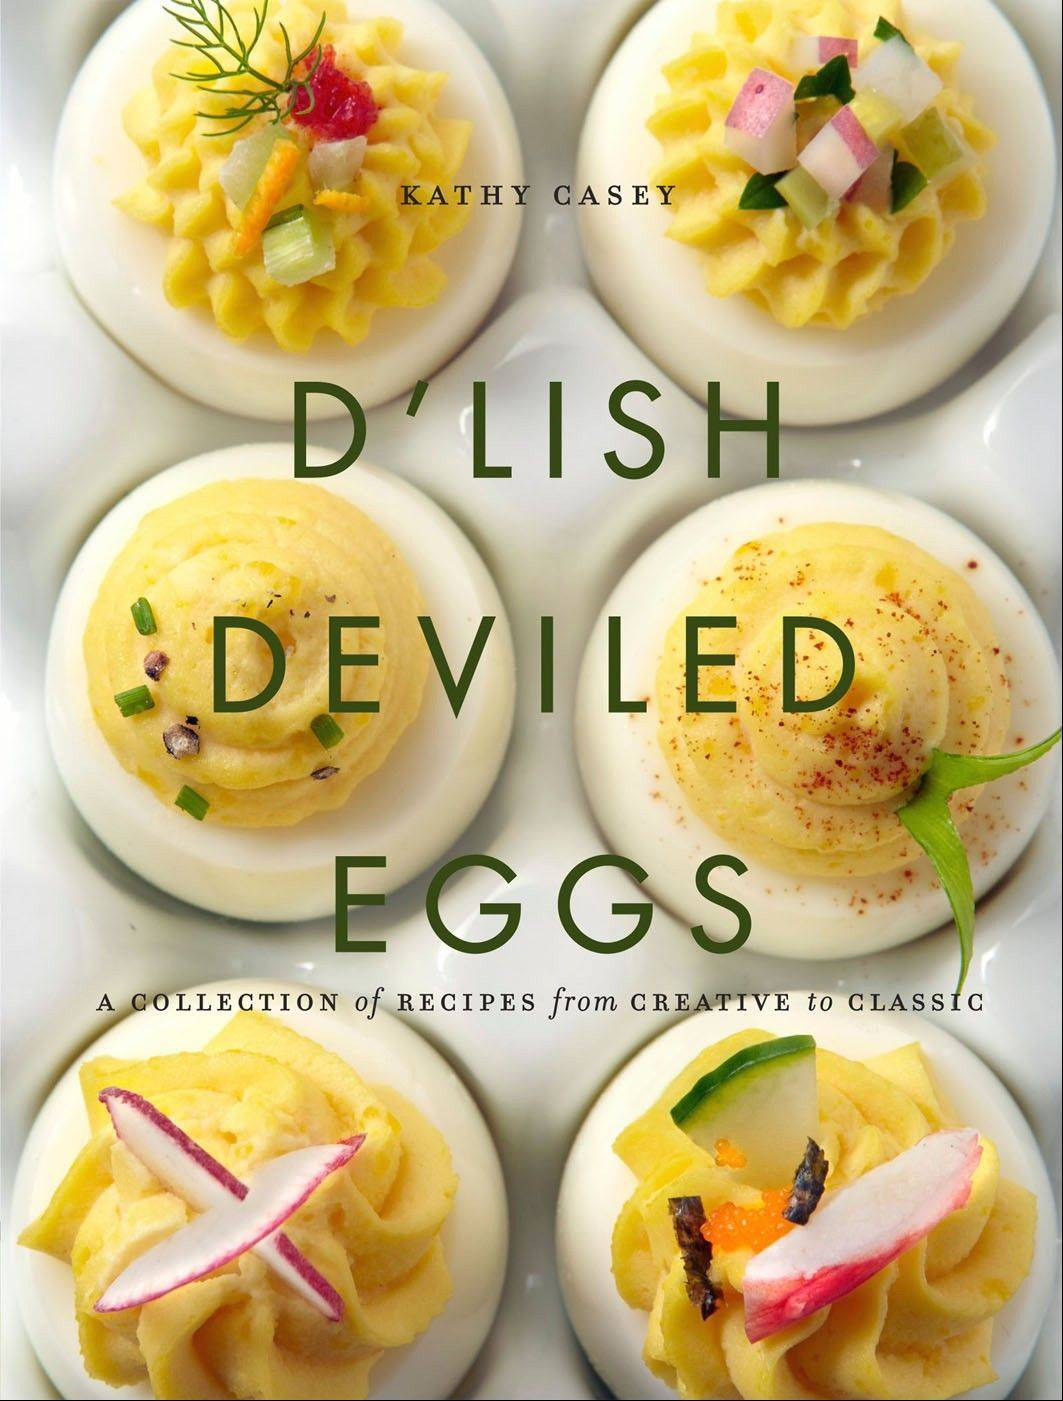 """D'Lish Deviled Eggs"" by Kathy Casey"